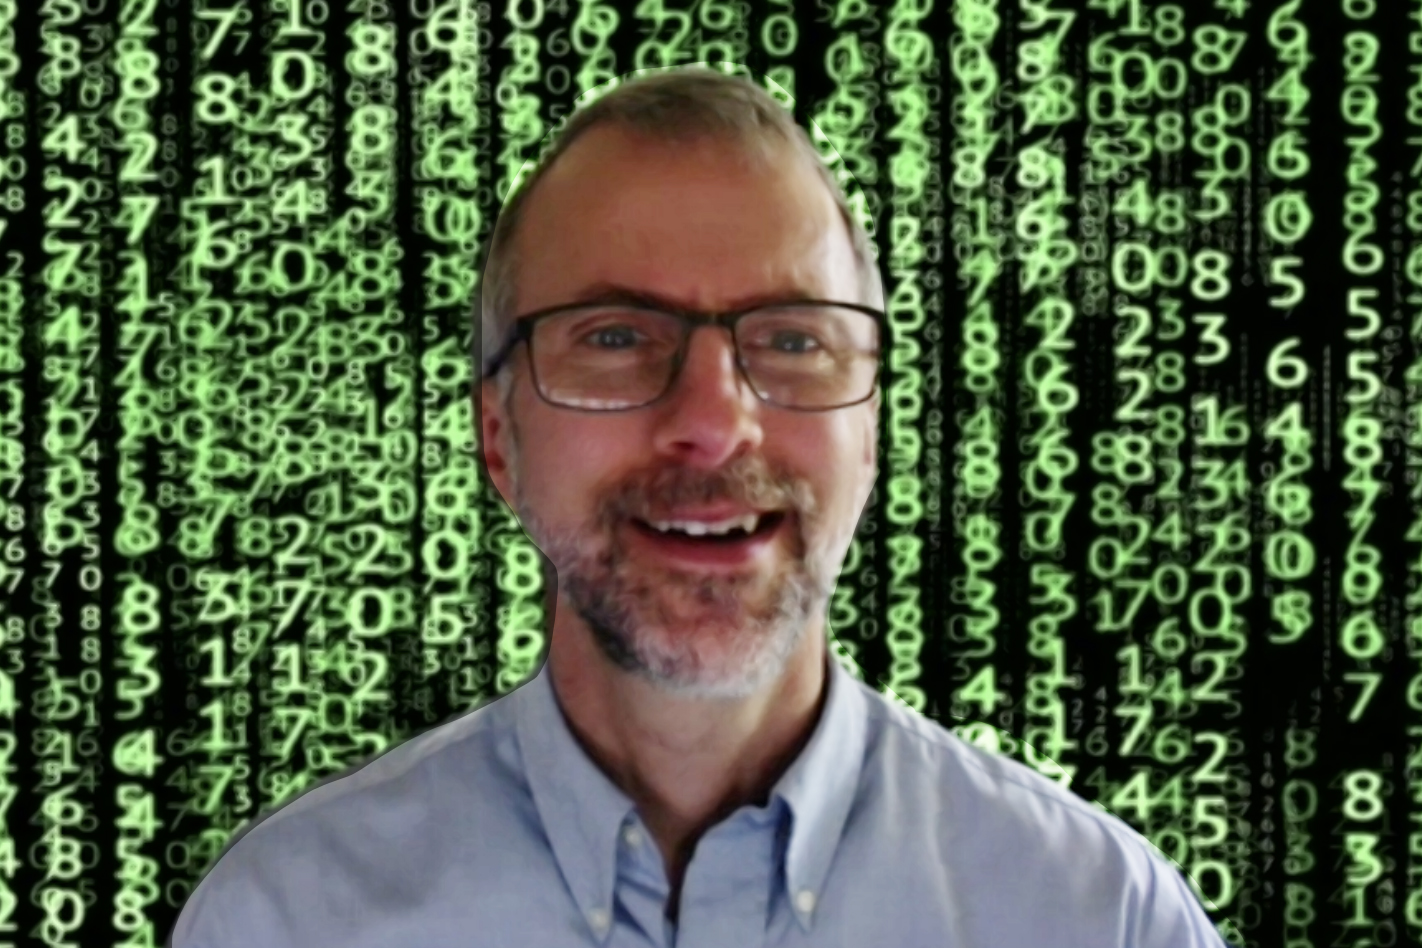 Fessler in front of Matrix code background